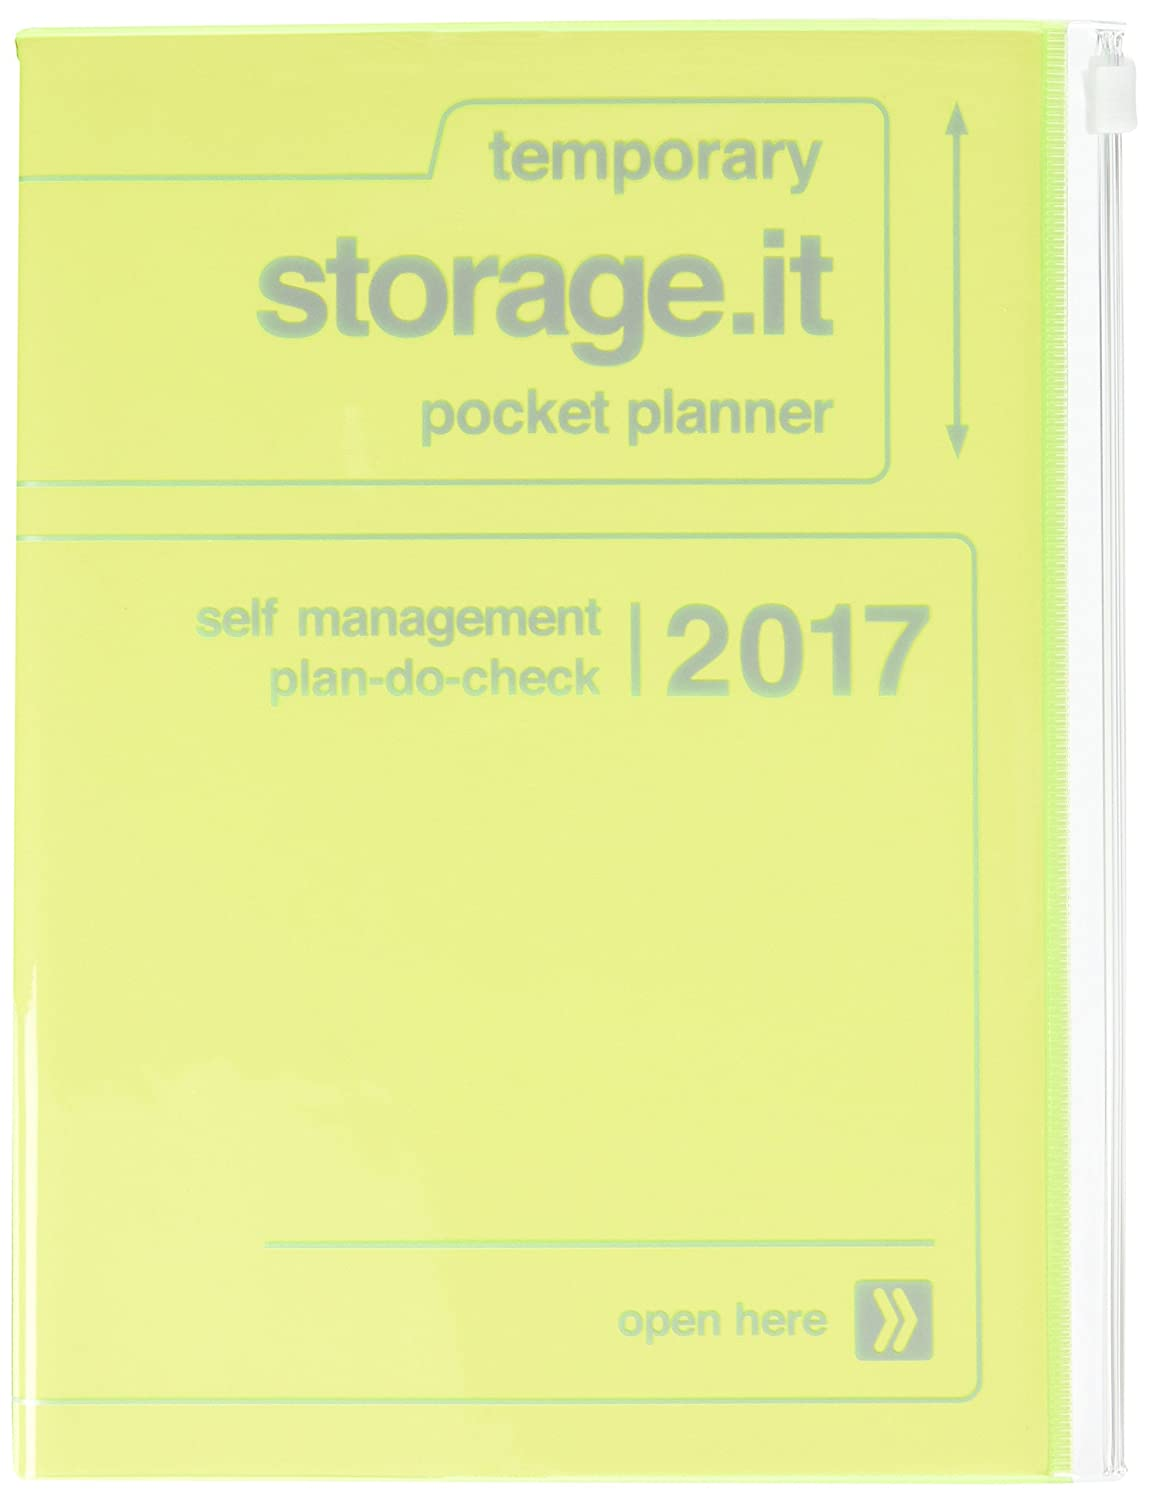 MARKS 2017 Taschenkalender A5 vertikal, Storage.it // Neon yellow: KAL